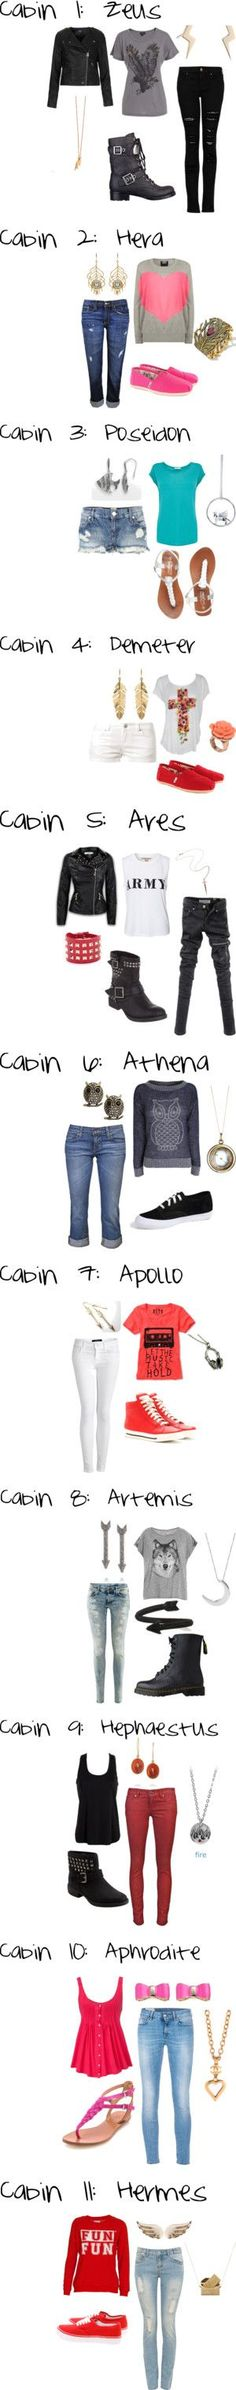 Camp Half-Blood cabins and coordinating outfits Percy Jackson Percy Jackson Serie, Percy Jackson Books, Percy Jackson Fandom, Hunger Games, Camp Half Blood Cabins, Percy Jackson Outfits, Percy Jackson Clothes, Rick Riordan, Tio Rick